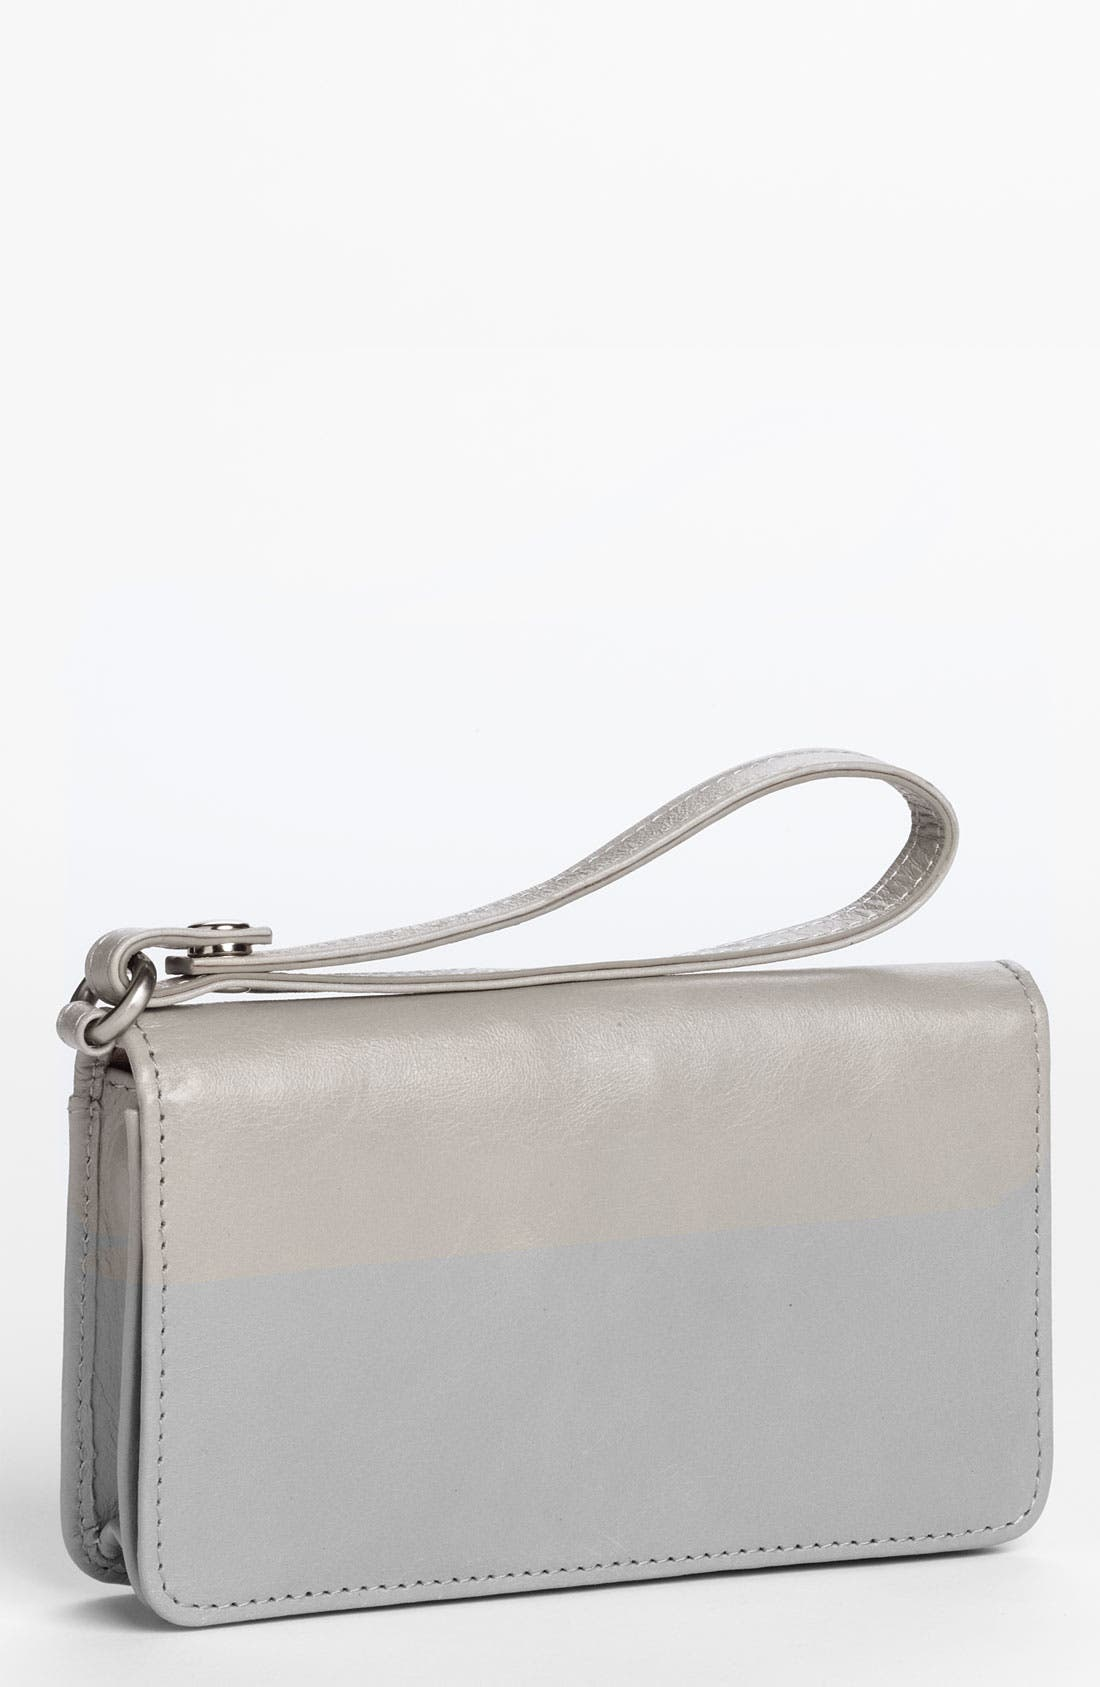 Alternate Image 1 Selected - Hobo 'Ally' Phone Wristlet